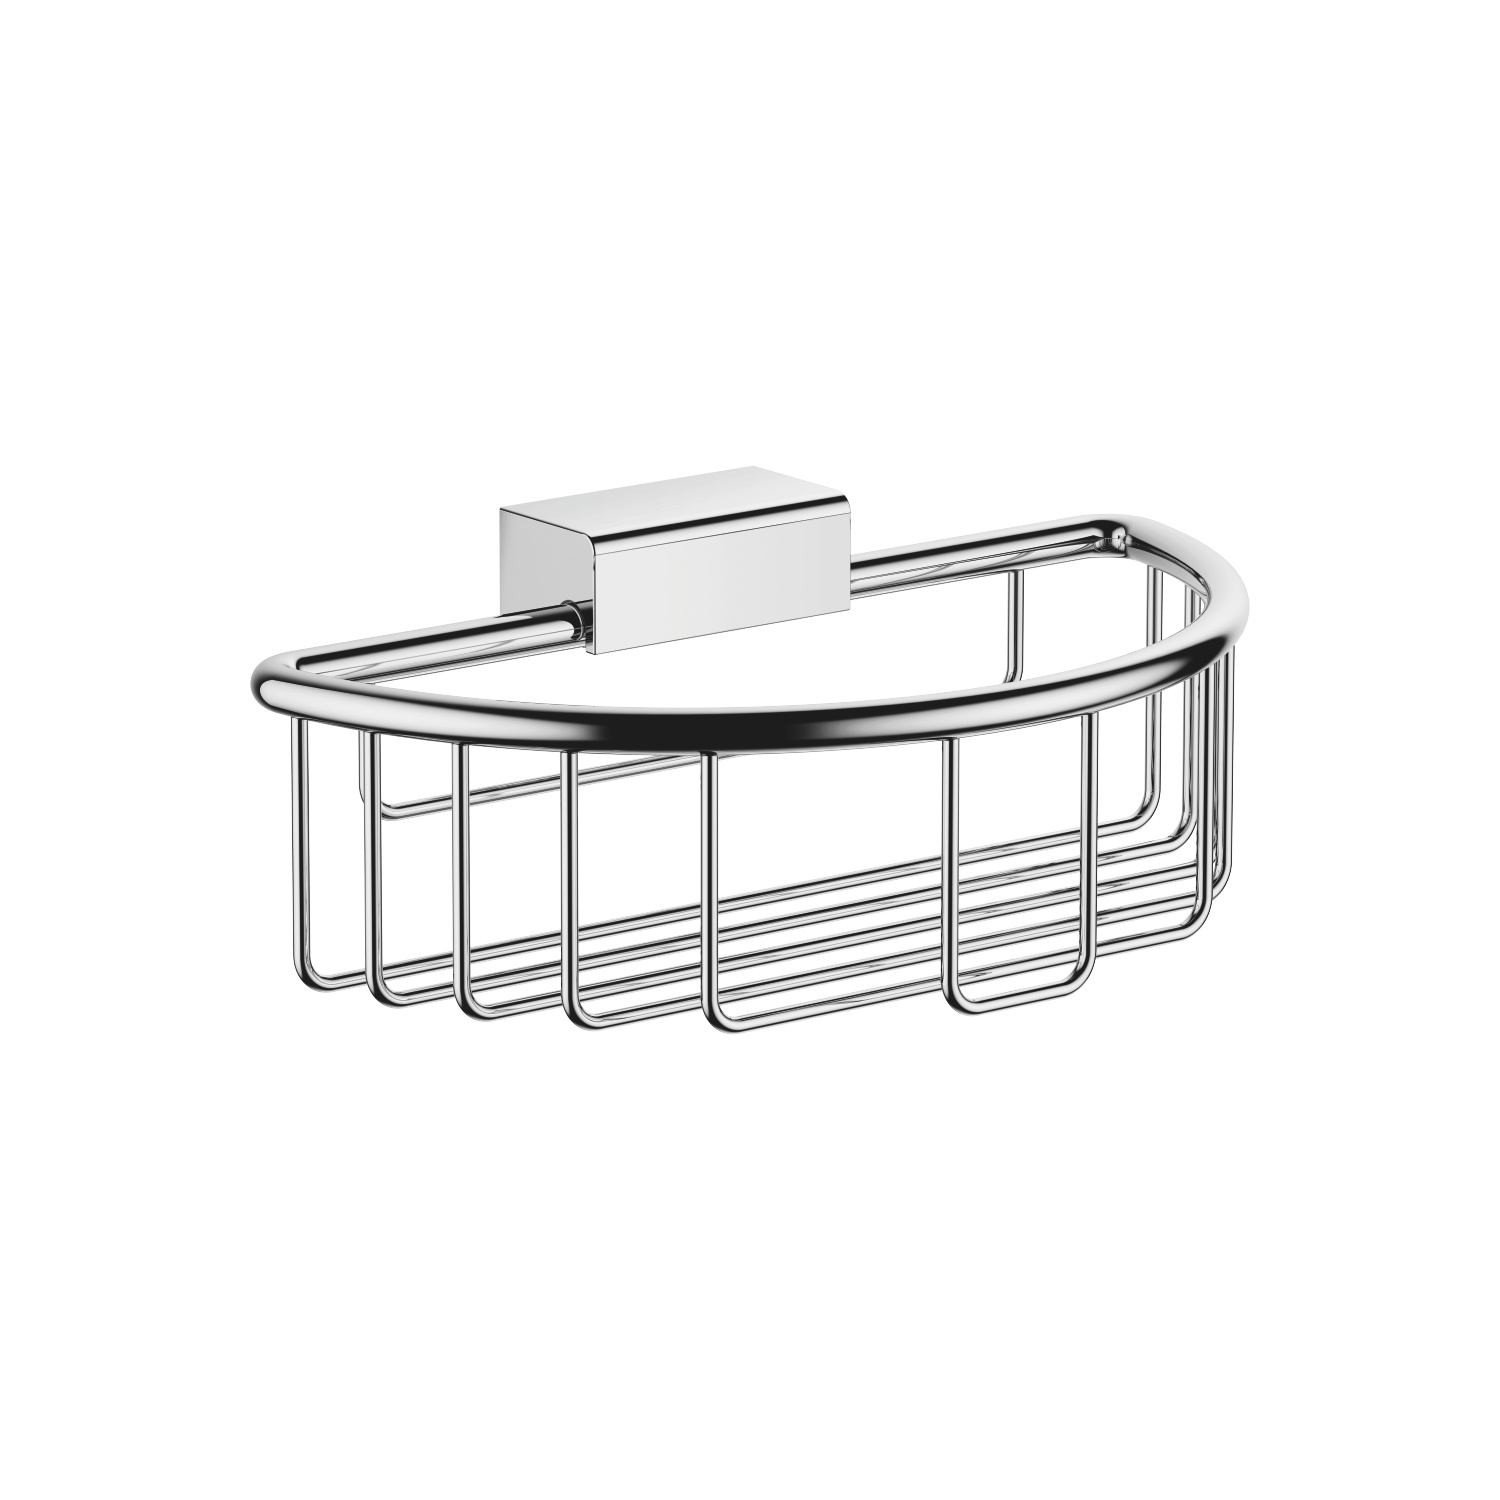 Shower basket for wall mounting - polished chrome